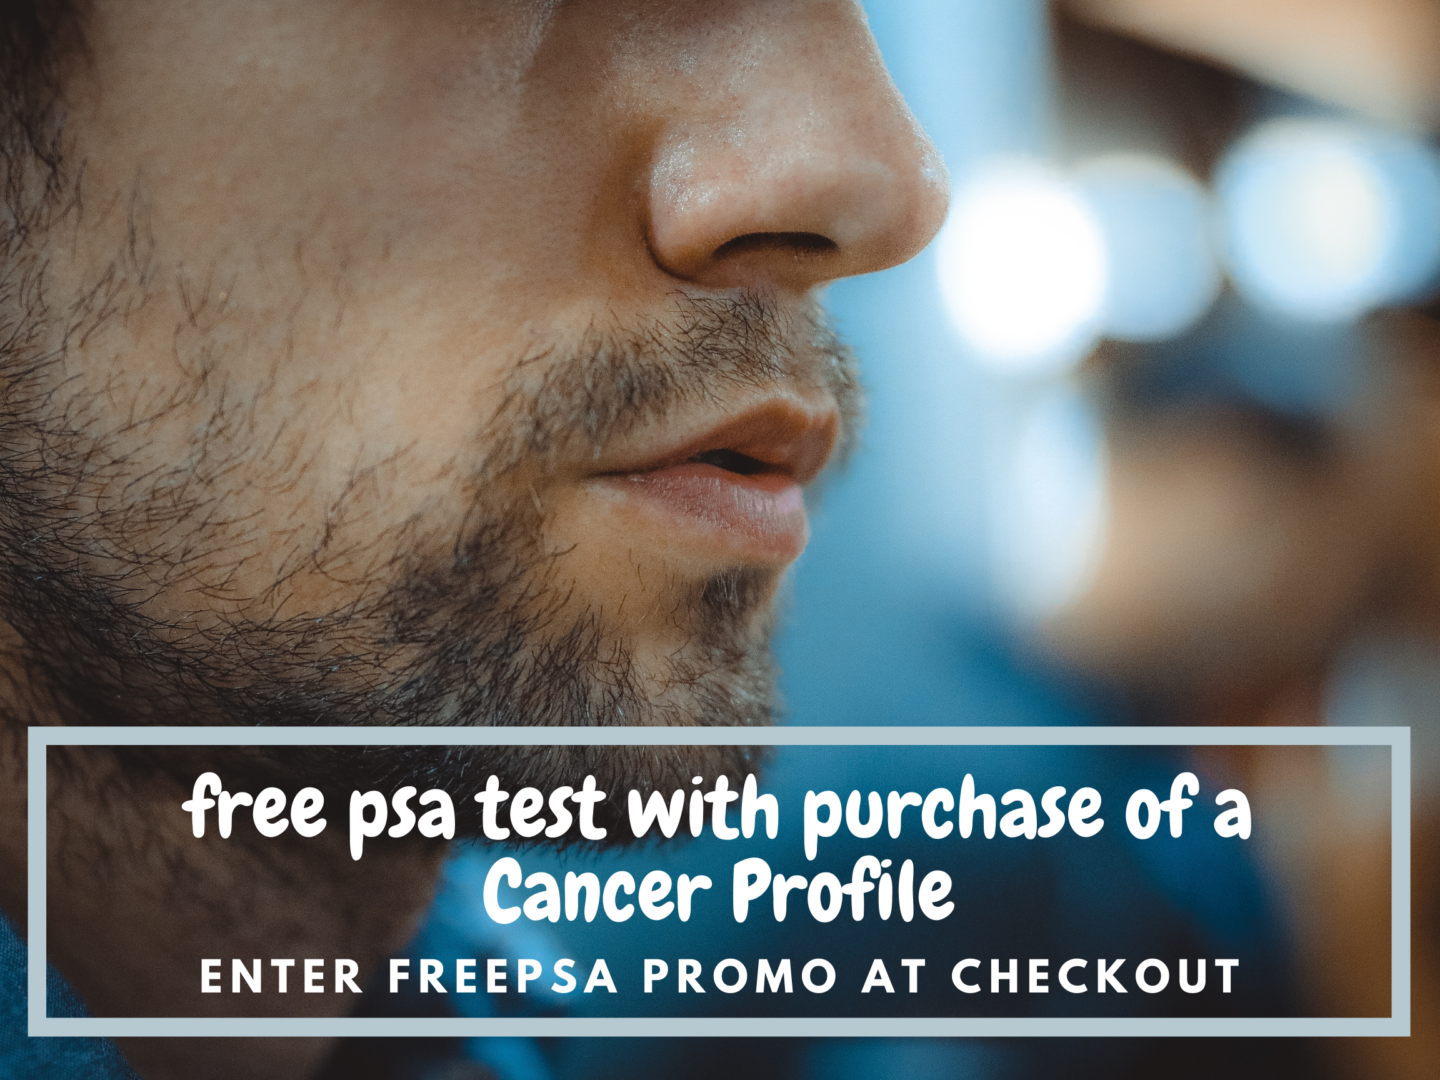 FREE PSA TEST with purchase of a Cancer Profile